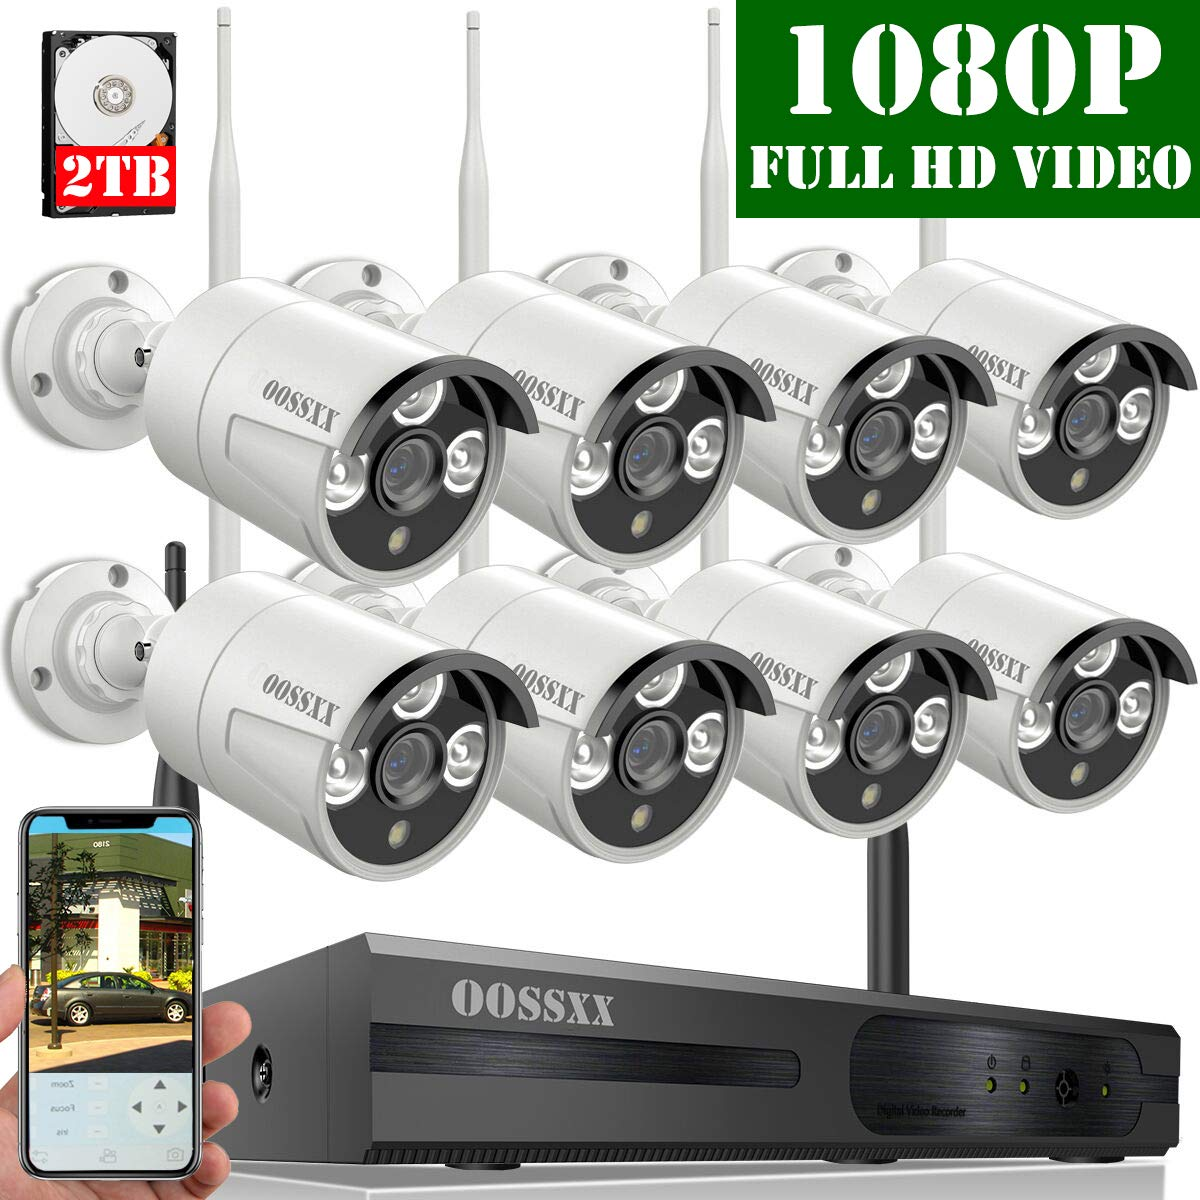 【2019 Update】 OOSSXX 8-Channel HD 1080P Wireless Security Camera System,8Pcs 1080P 2.0 Megapixel Wireless Indoor/Outdoor IR Bullet IP Cameras,P2P,App, HDMI Cord & 2TB HDD Pre-Install by OOSSXX